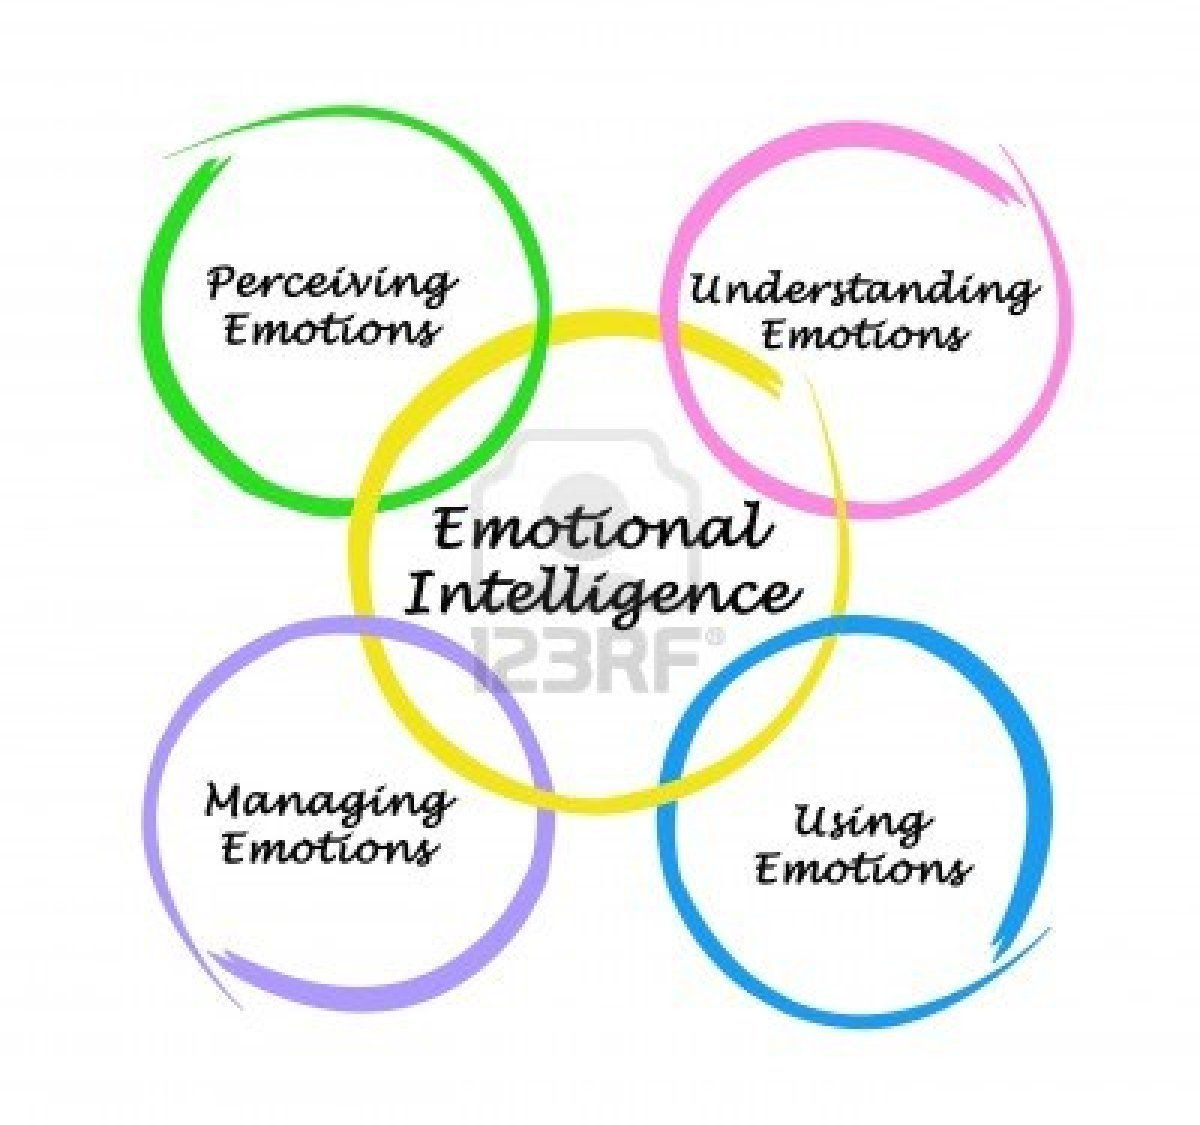 salovey and er s ability model of emotional intelligence has salovey and er s ability model of emotional intelligence has four components perceive use